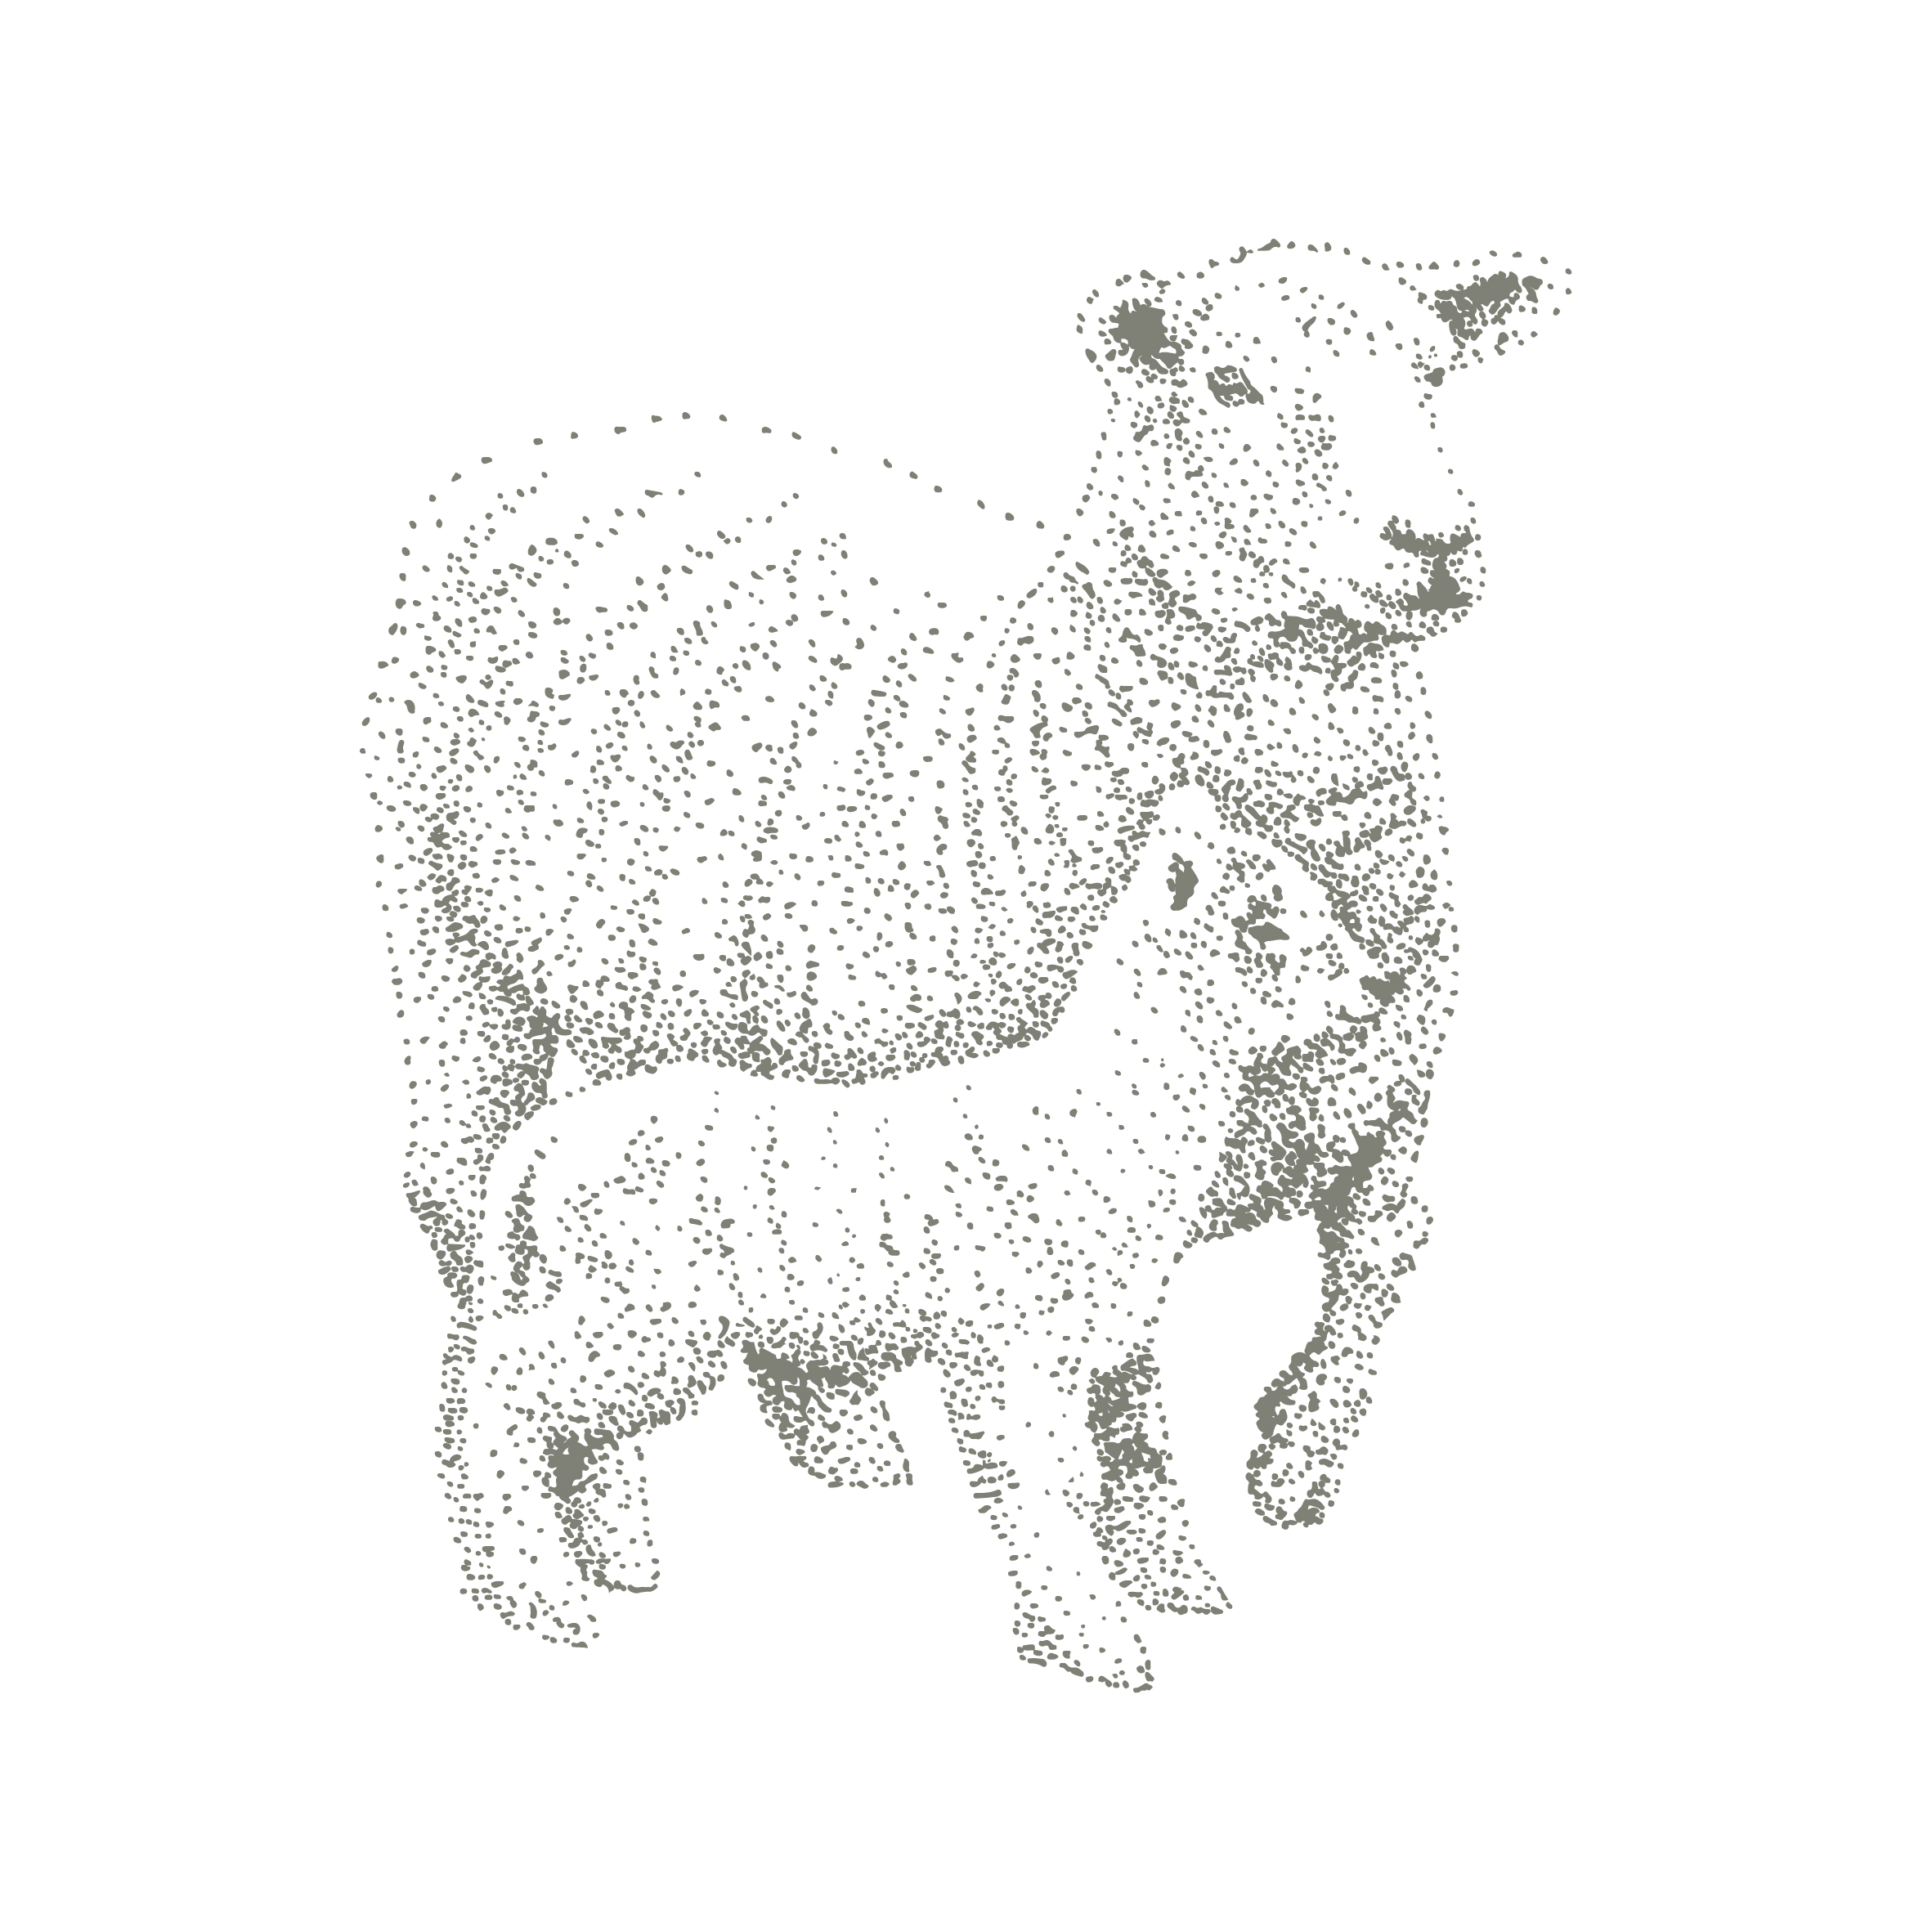 romney sheep illustration for the pure meat company branding by ditto creative, branding agency for small businesses in kent